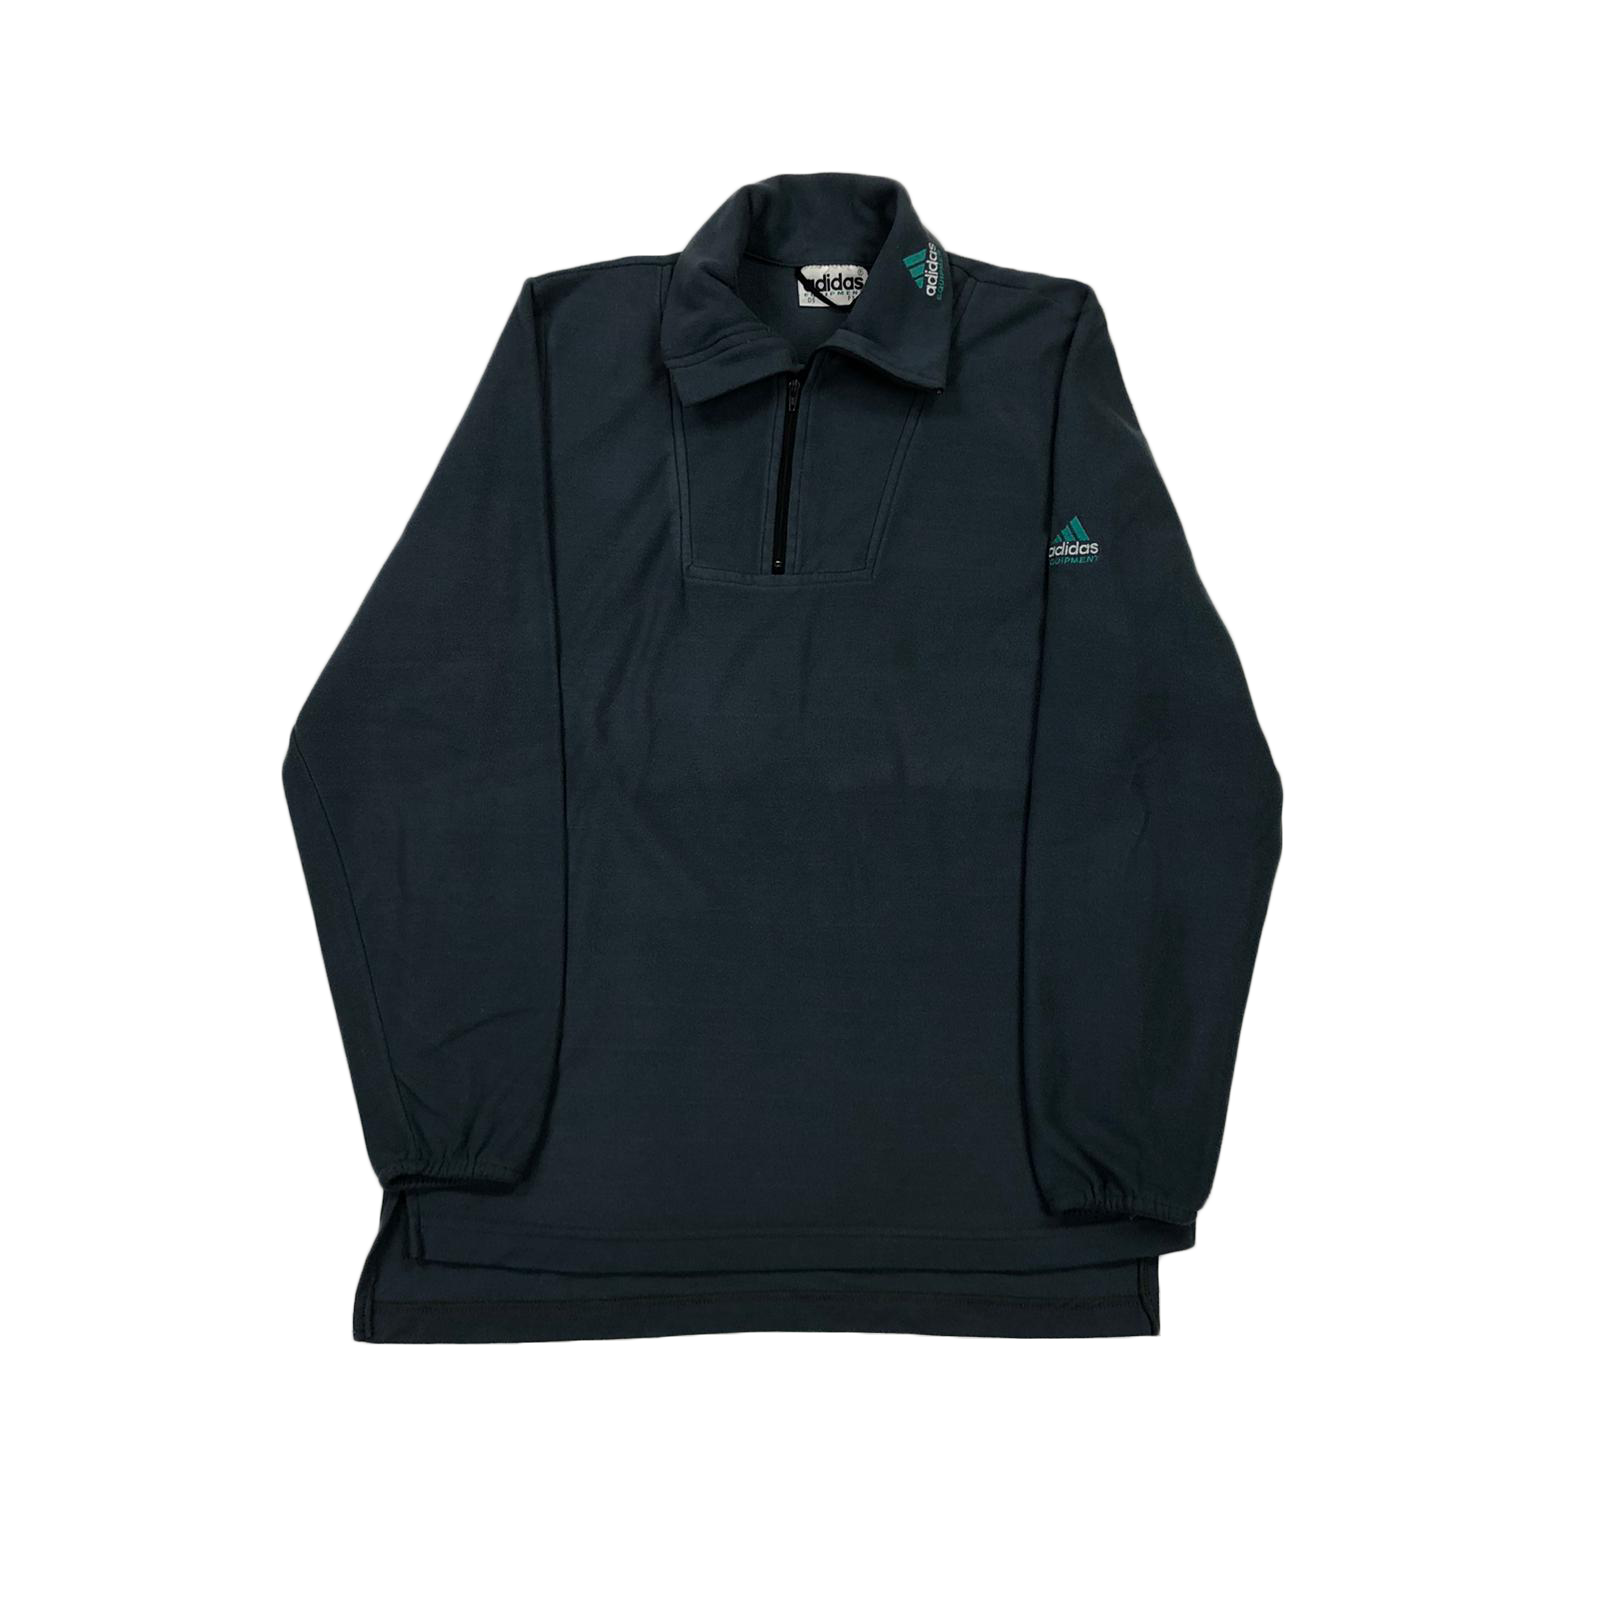 Adidas EQT 1/4 zip fleece